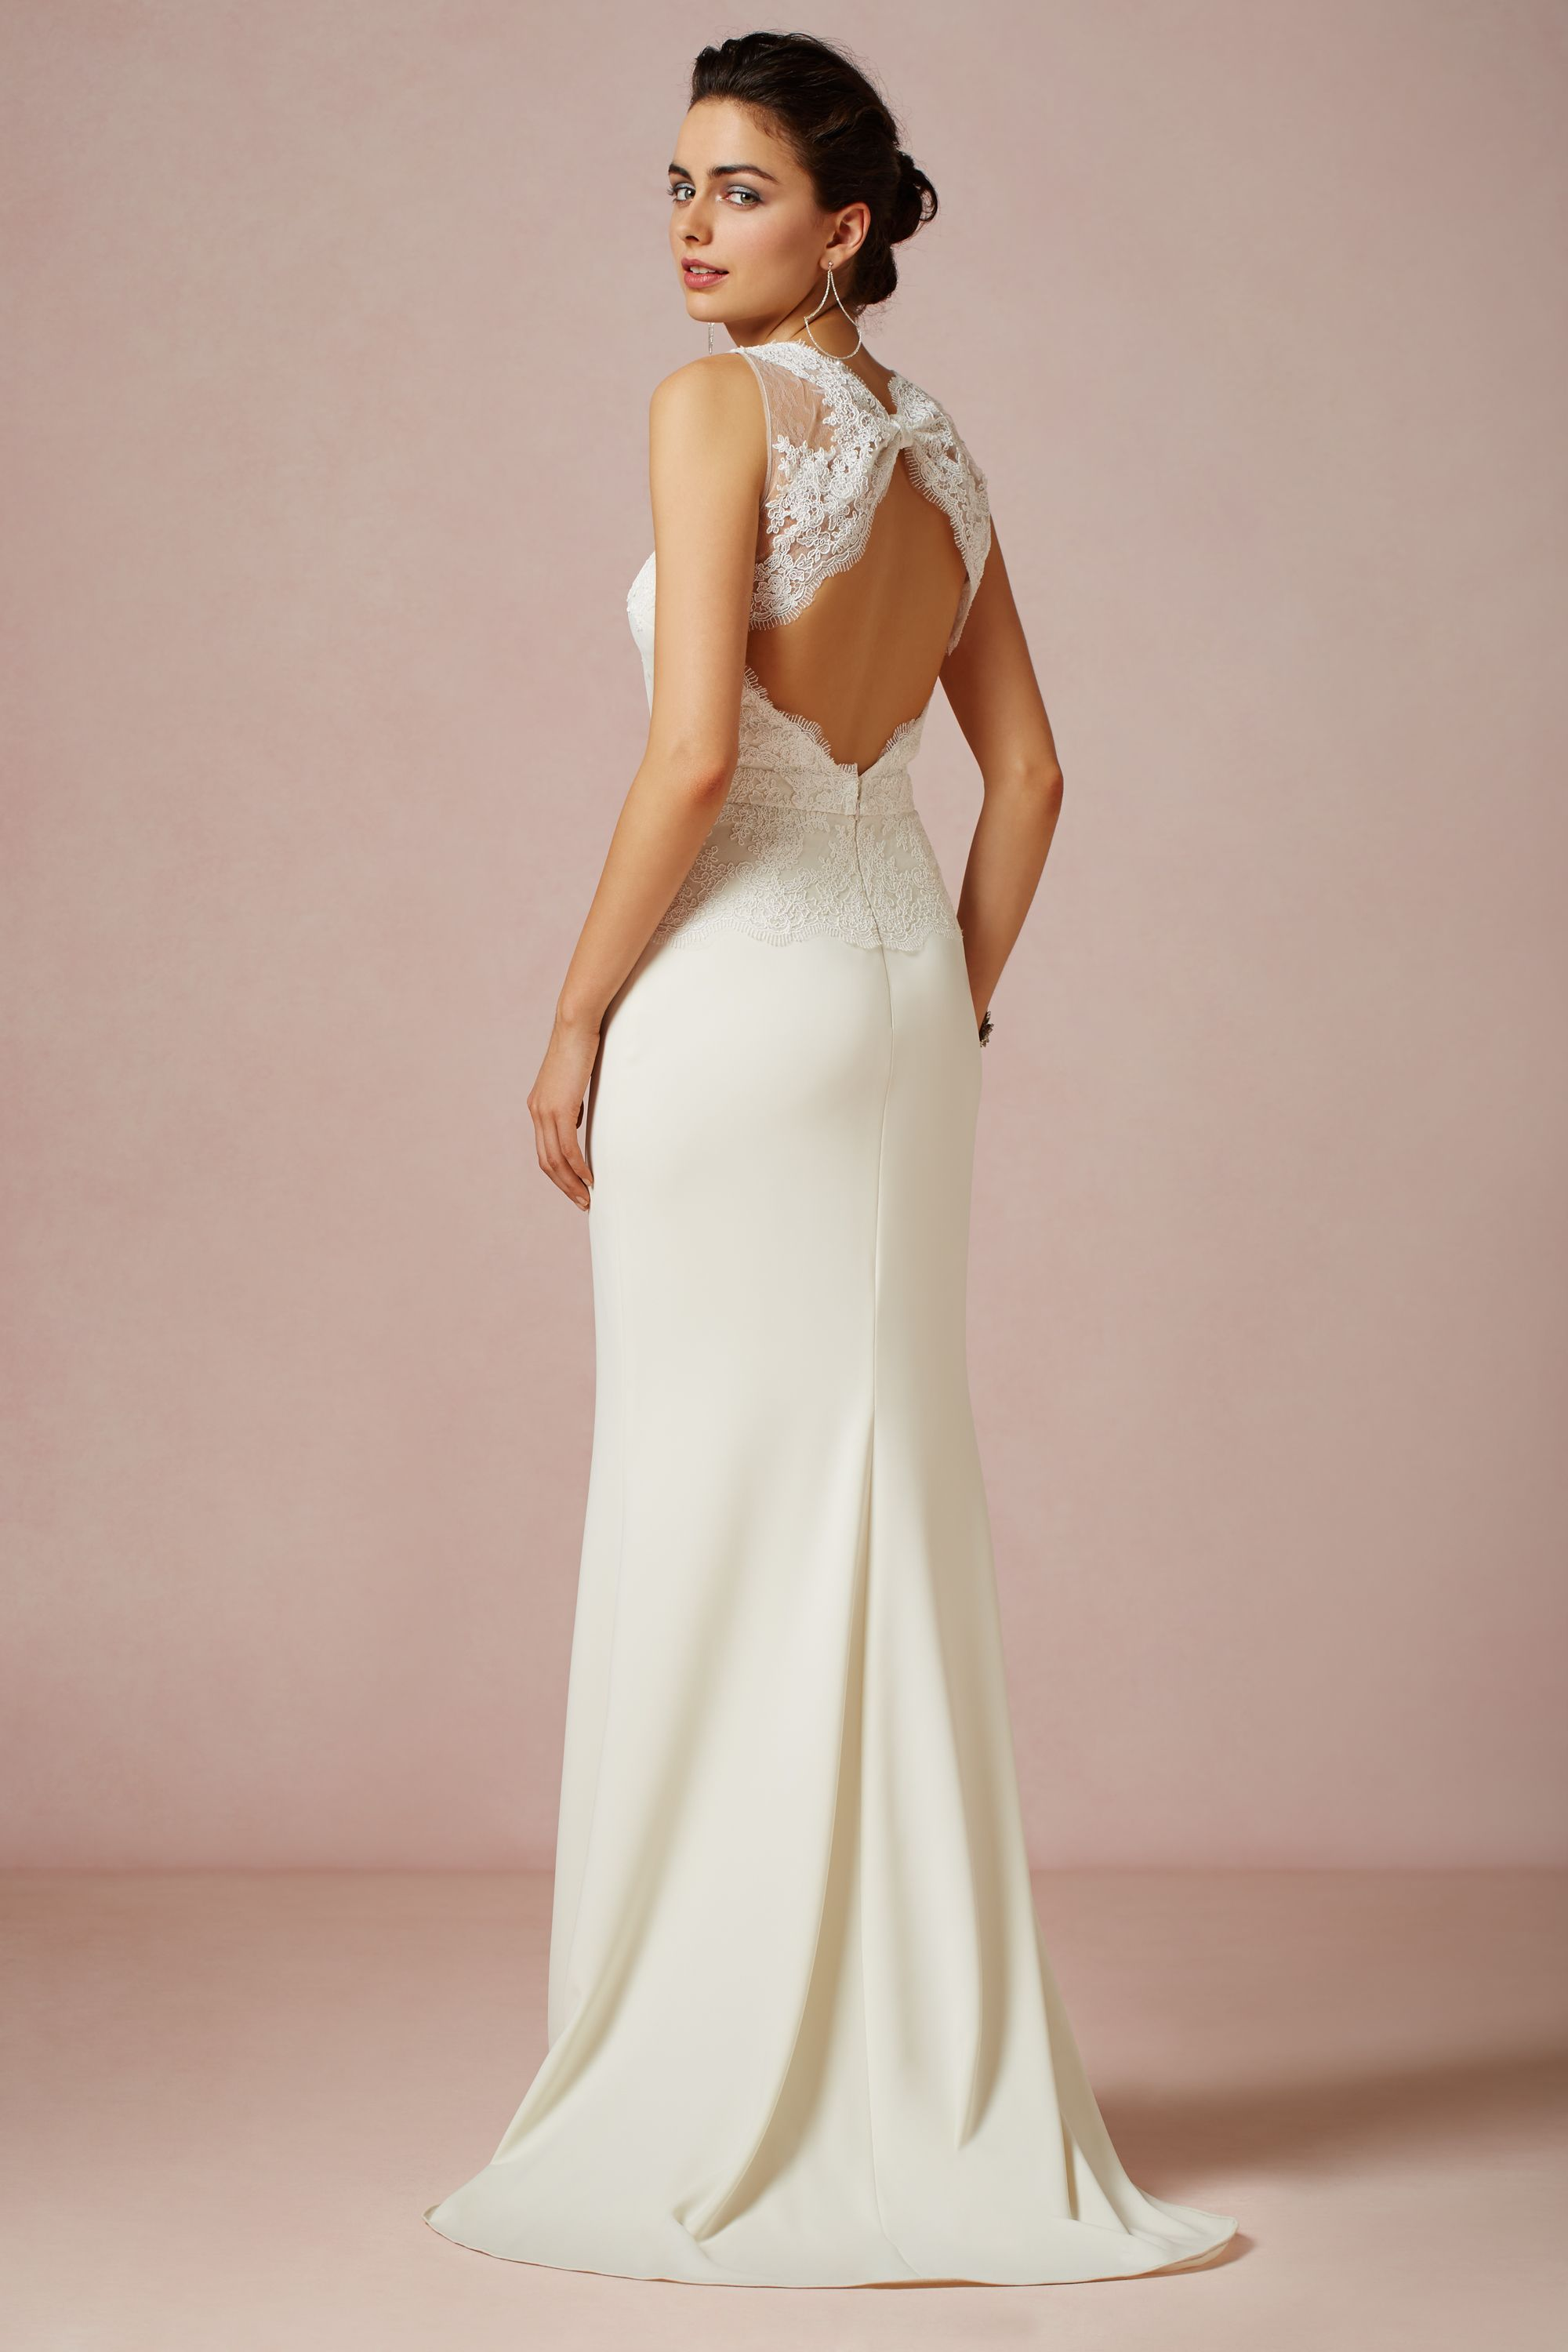 Inexpensive Bridal Gowns That Make Us Want to Twirl! • Bumps and Bottles